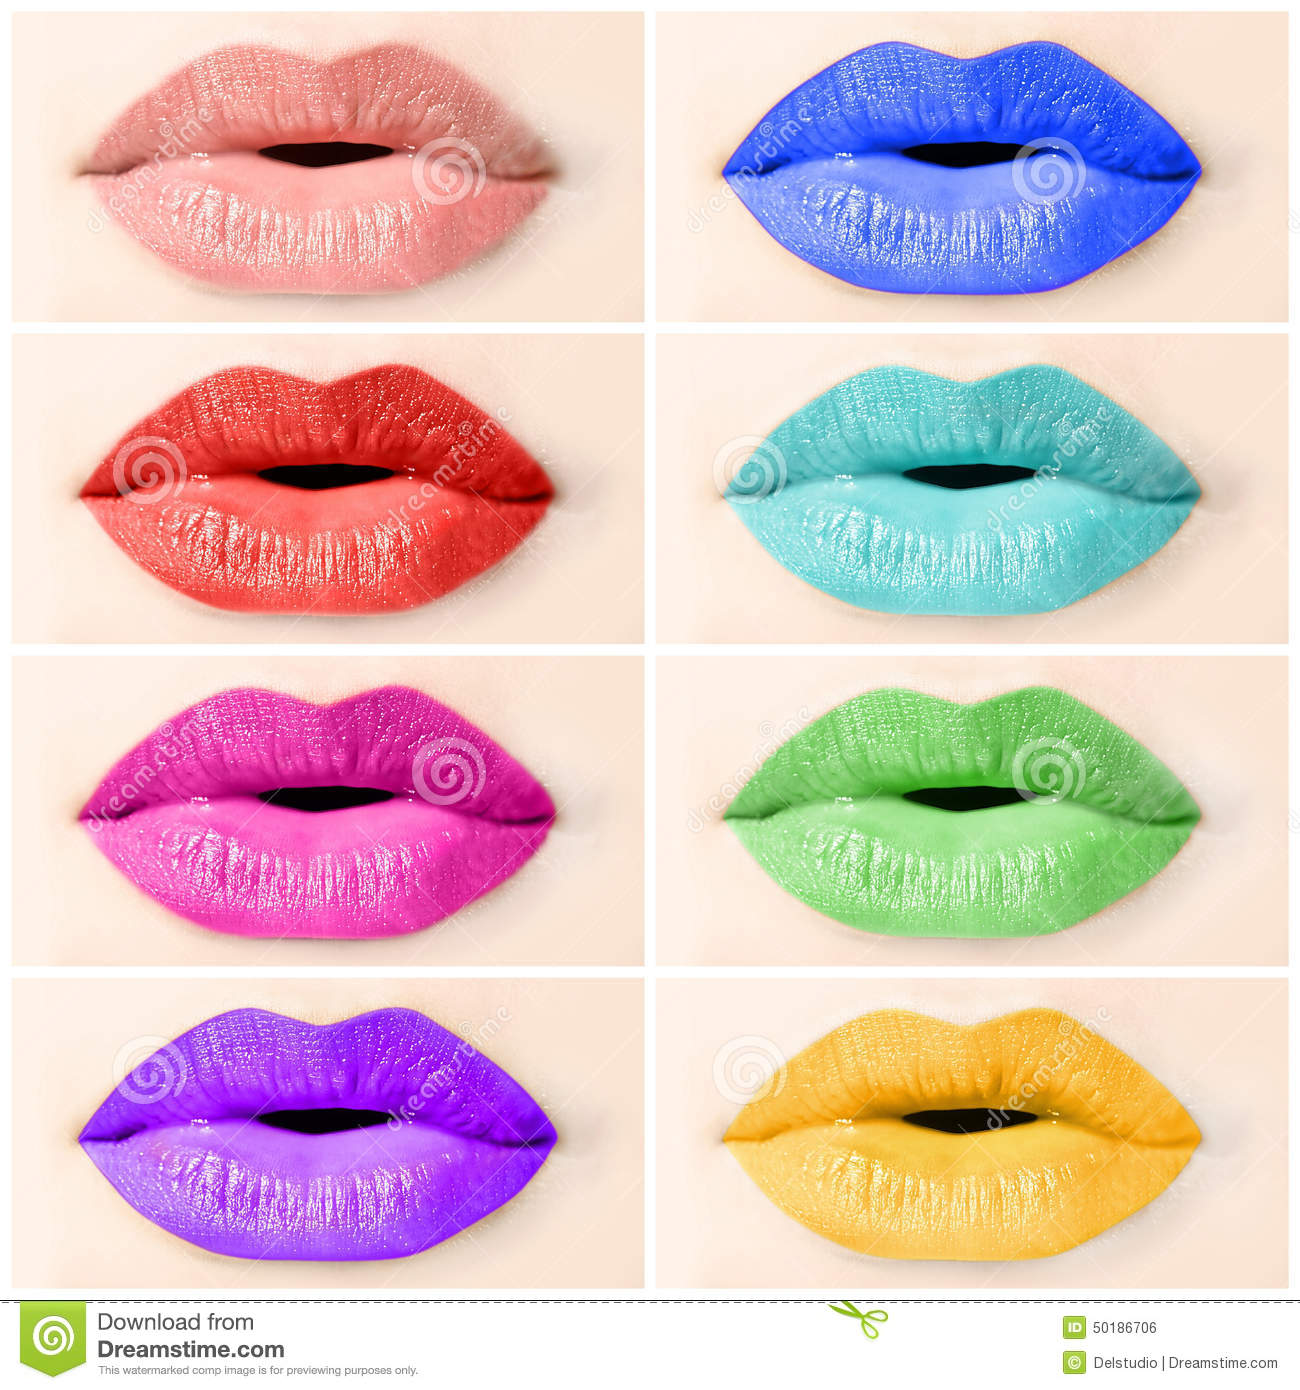 Coloured lips collage